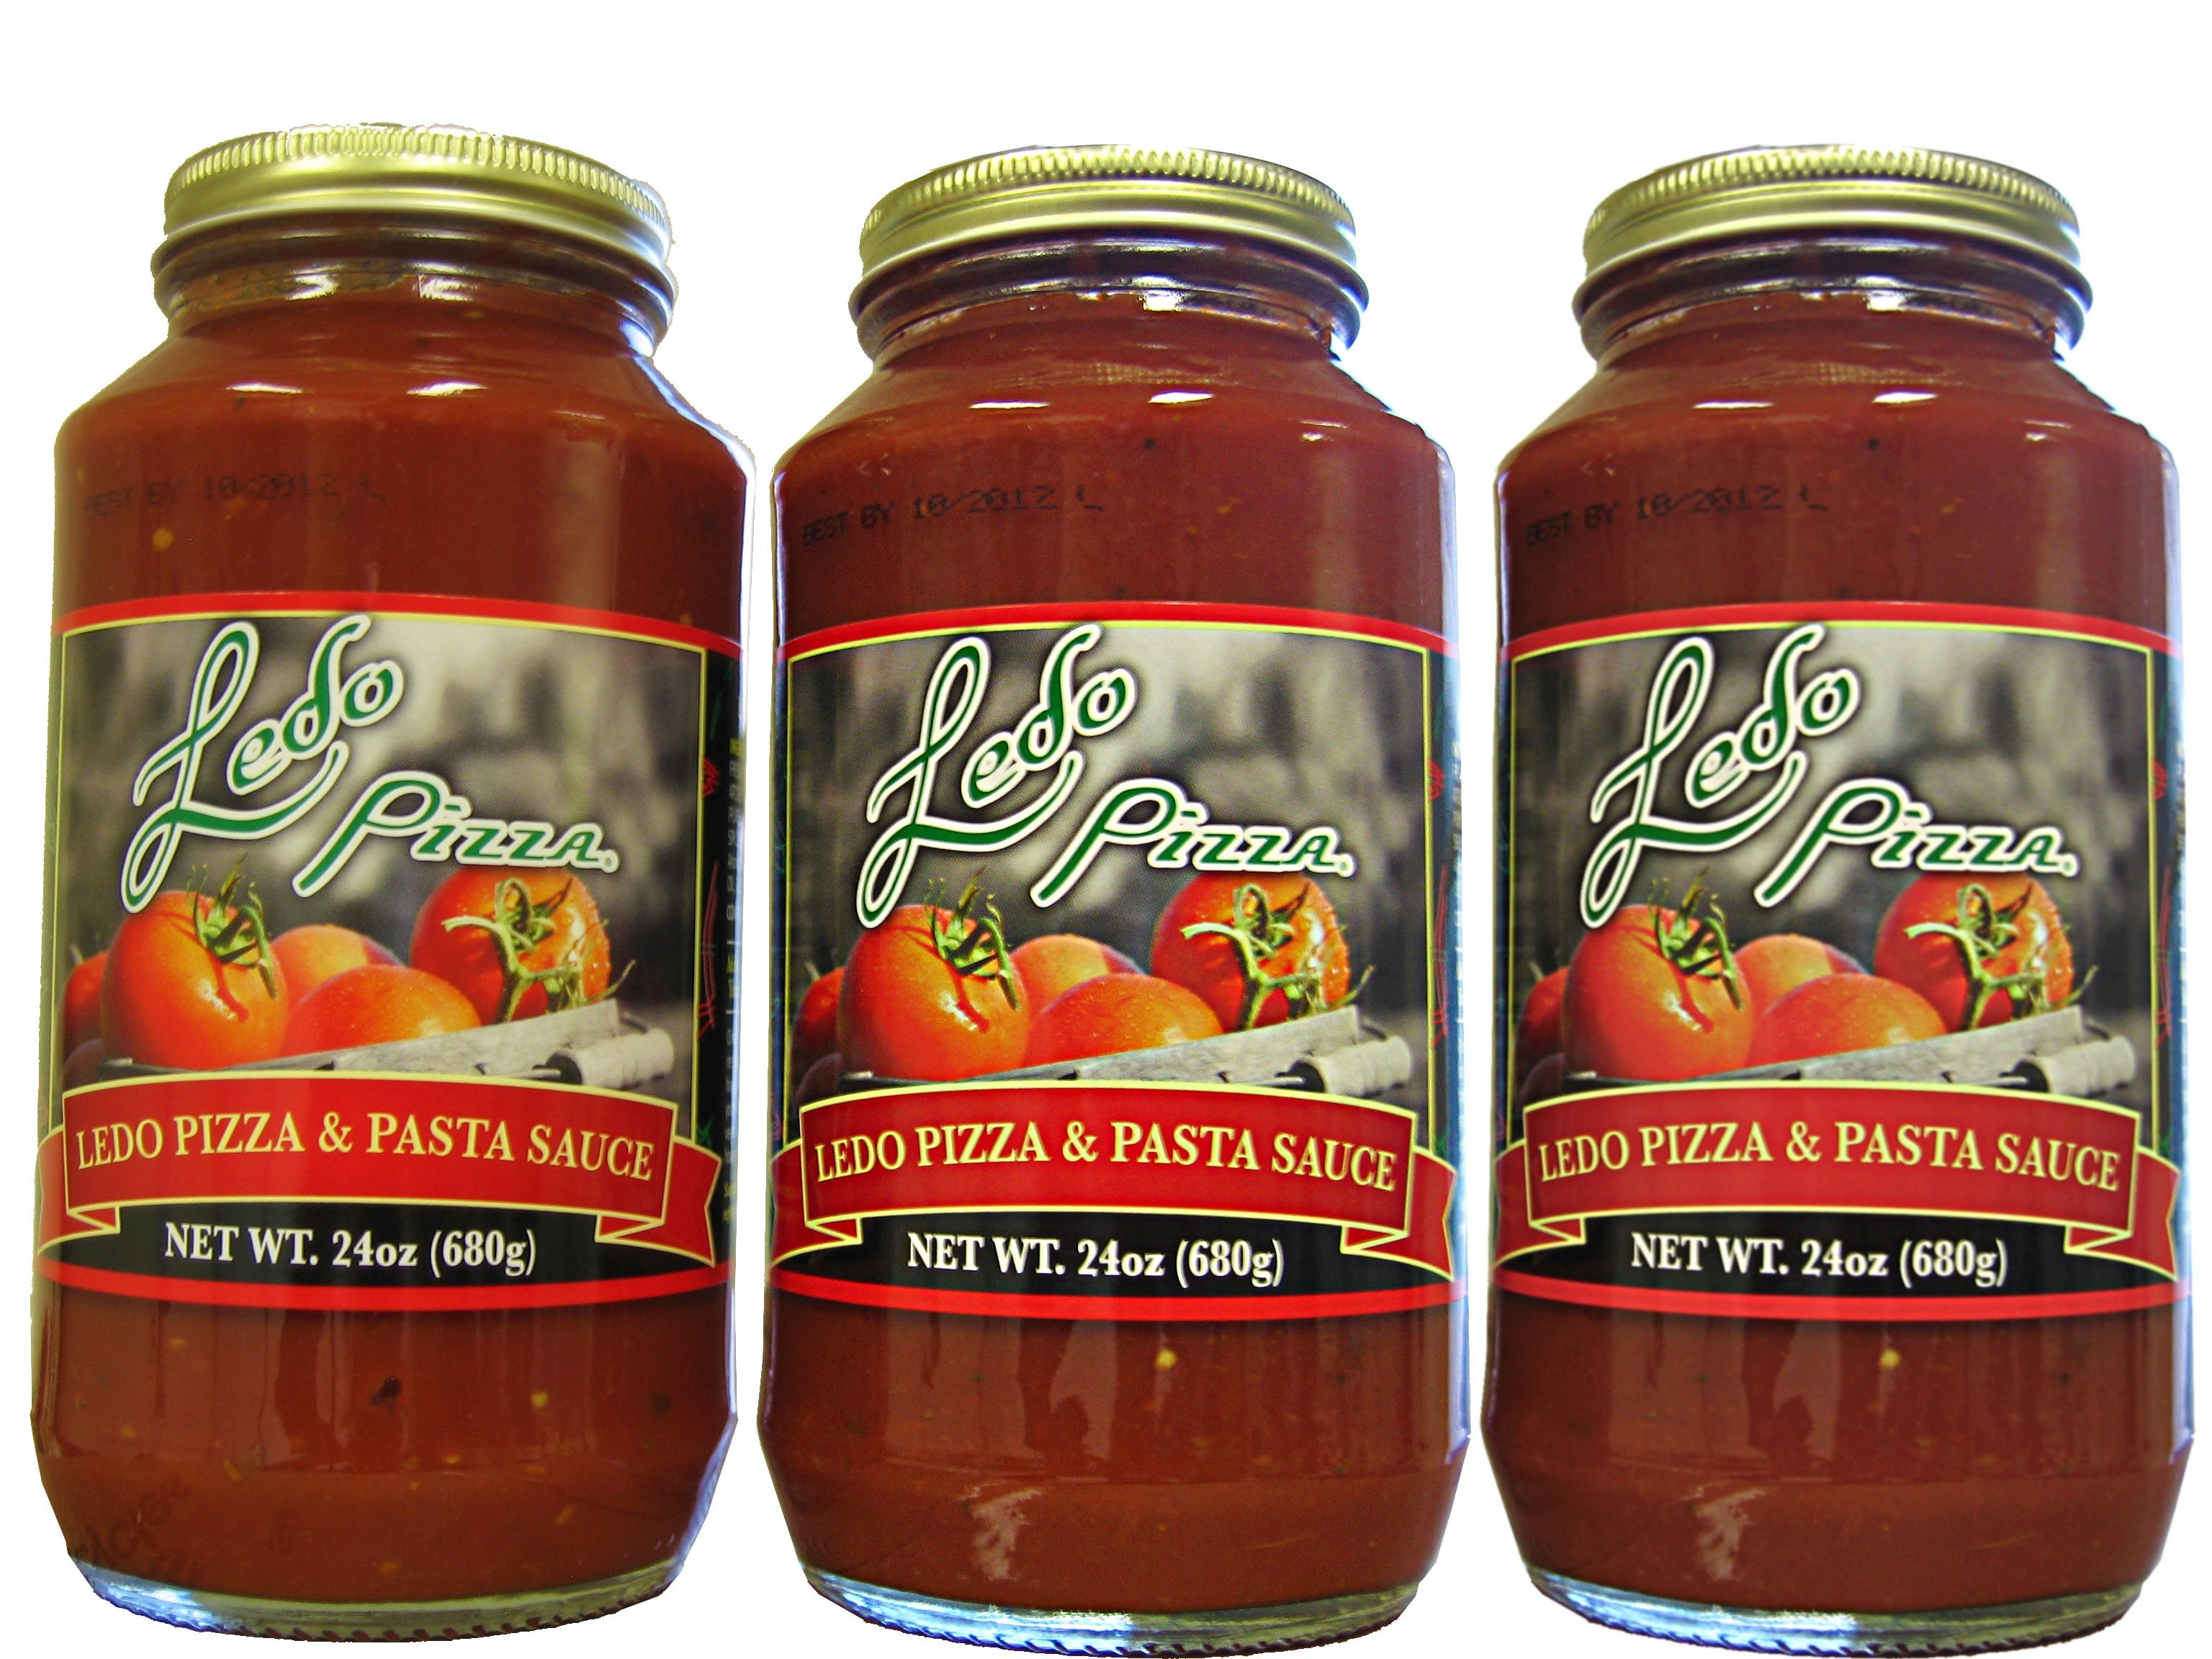 Photo of 3 Ledo Pizza Sauce Jars